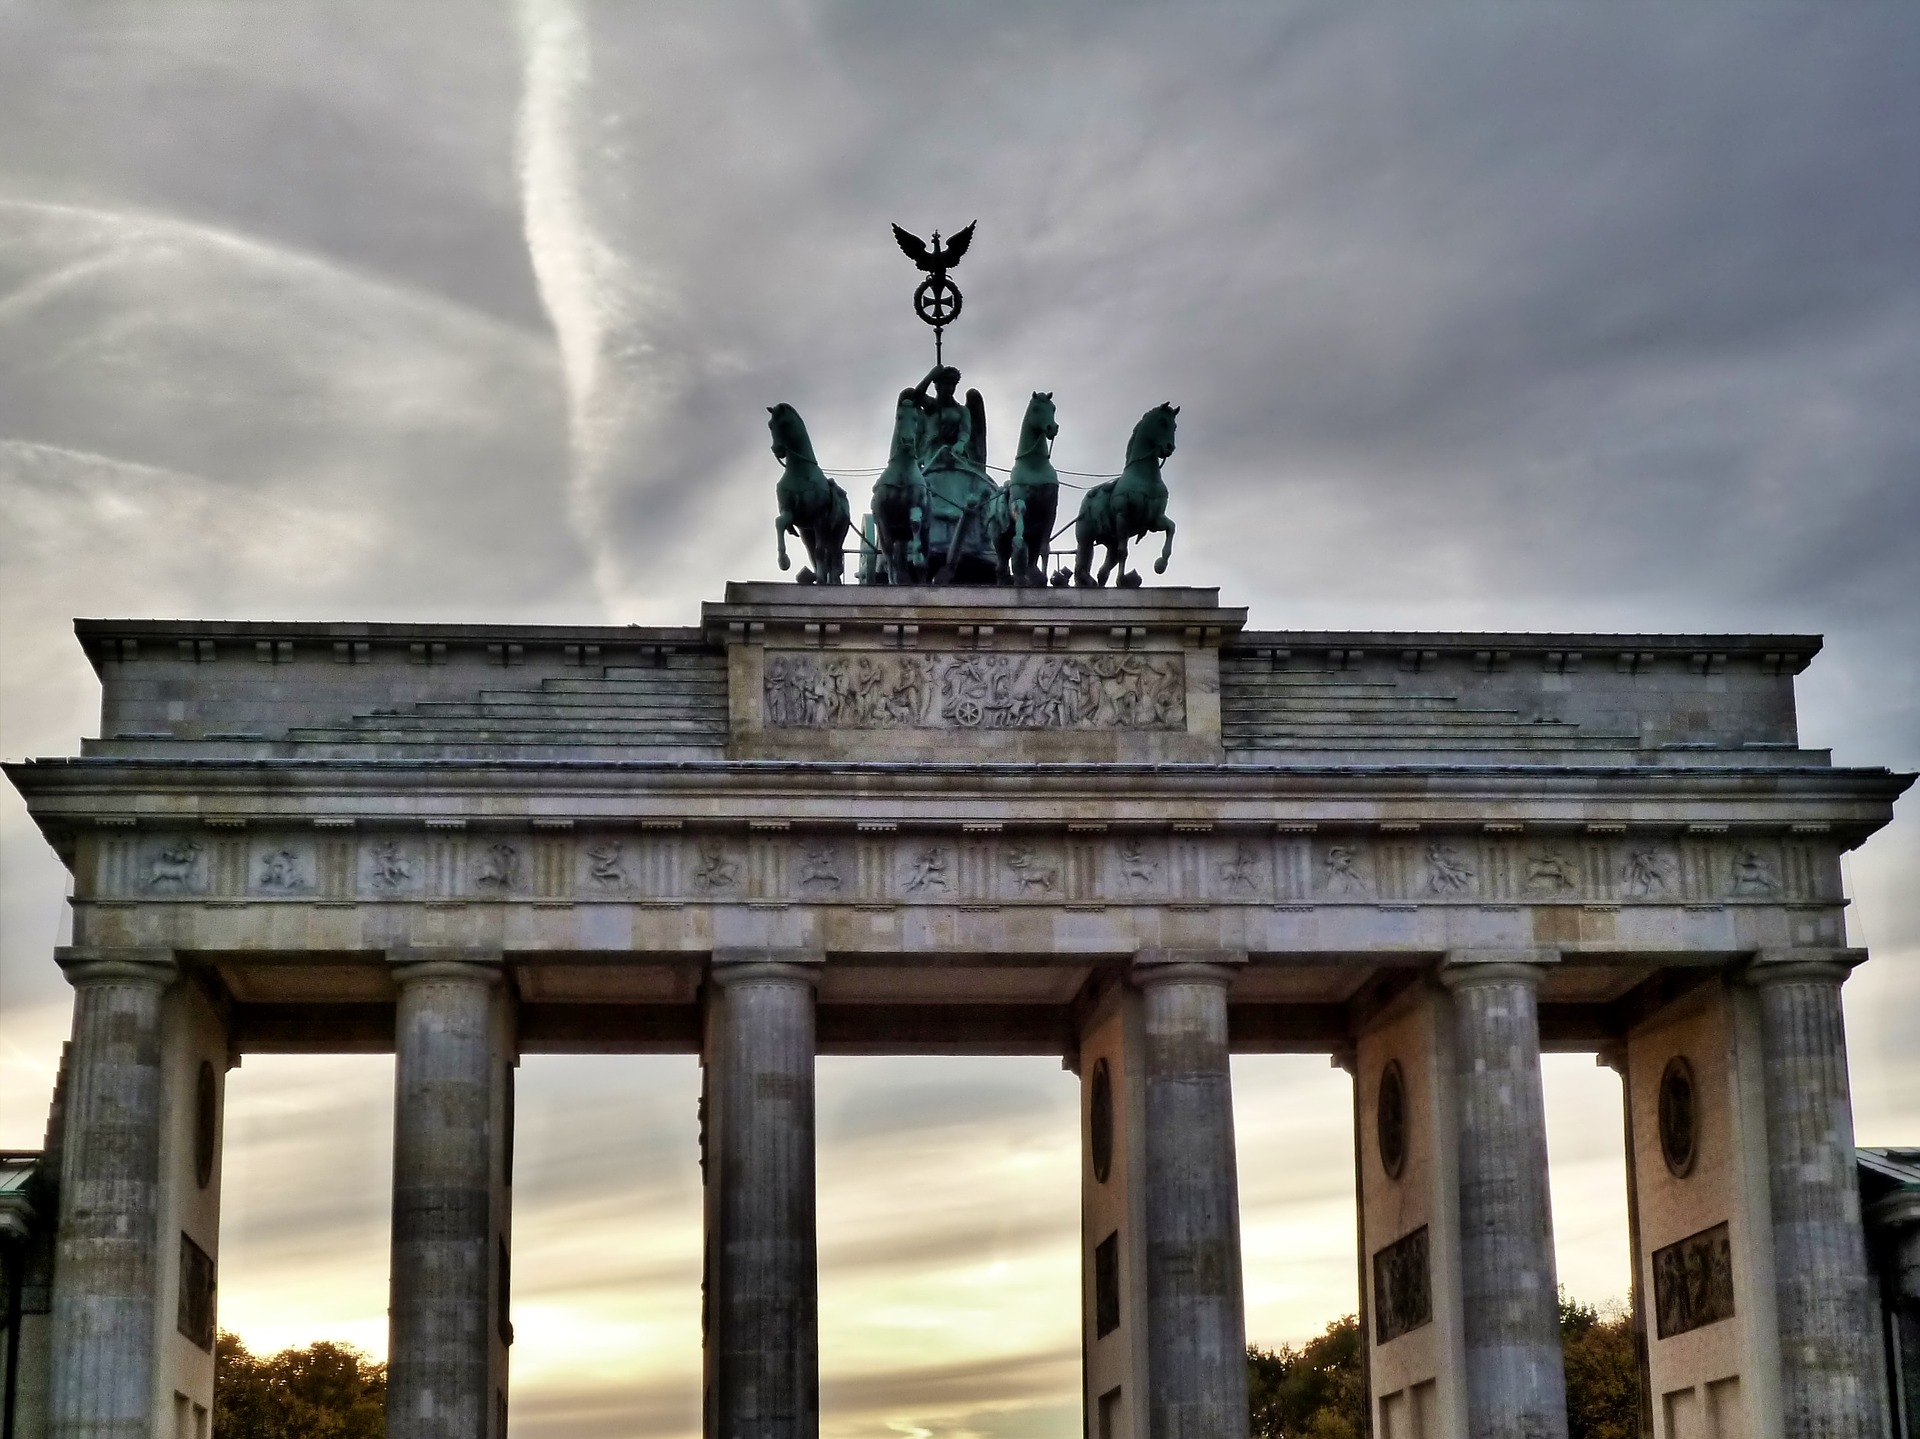 EAPC 2019 in Berlin to include Children's Palliative Care Seminar - abstract deadline extended